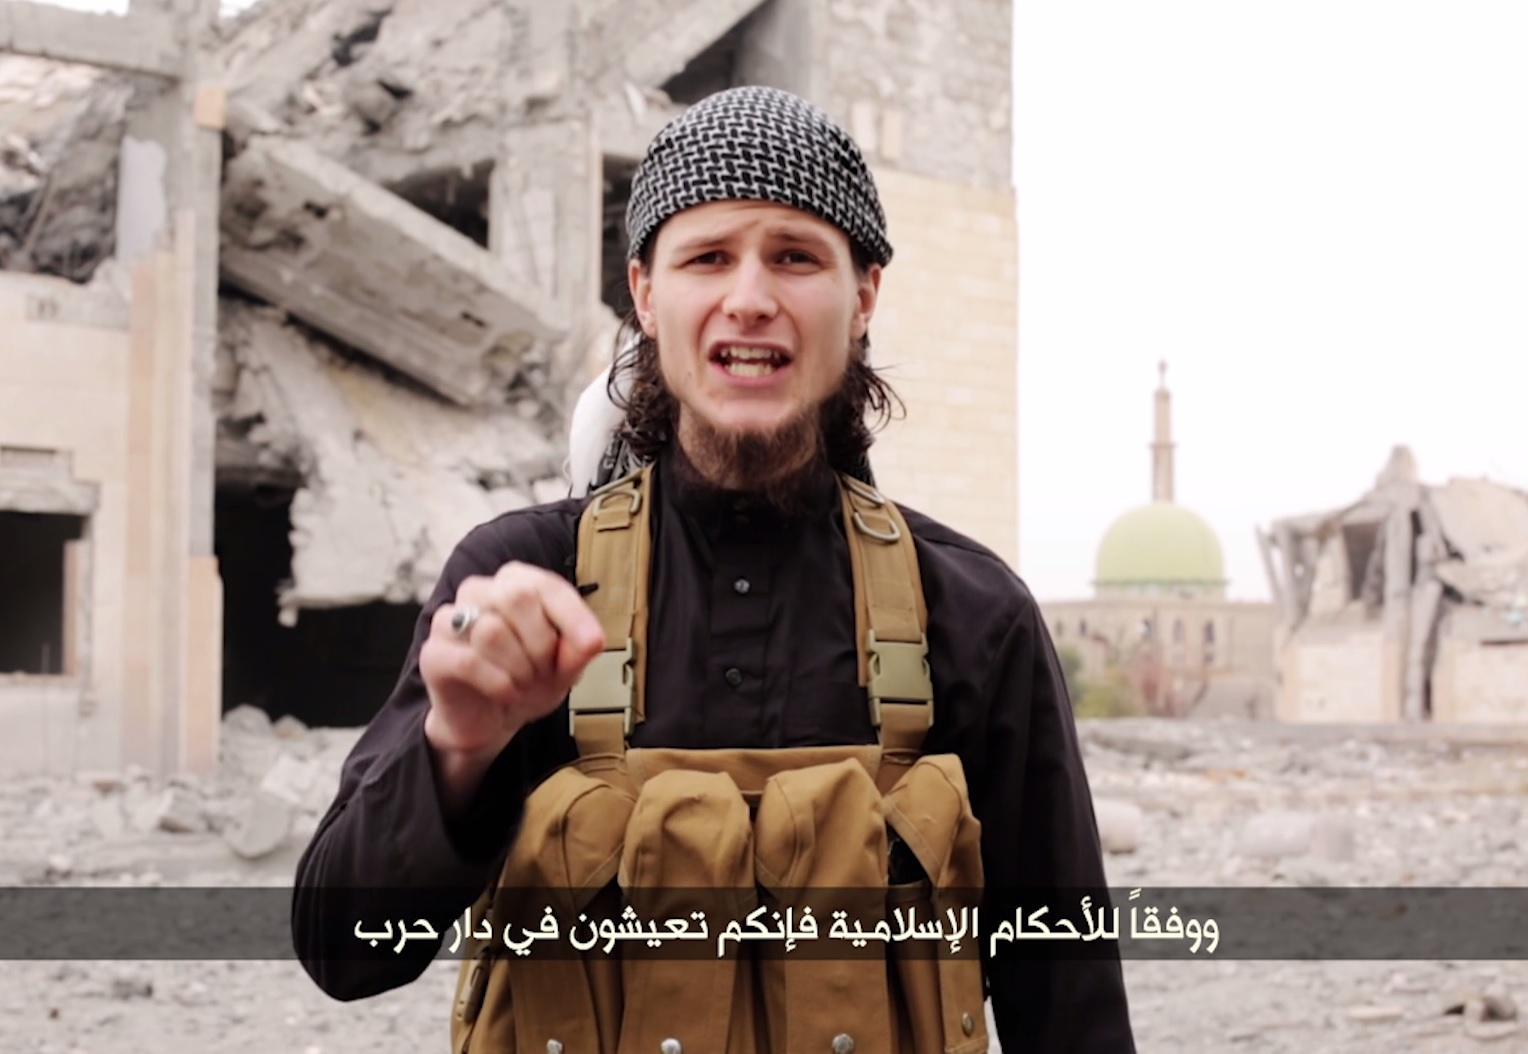 isis-canadian-john-maguire-video.jpg (1528×1054)